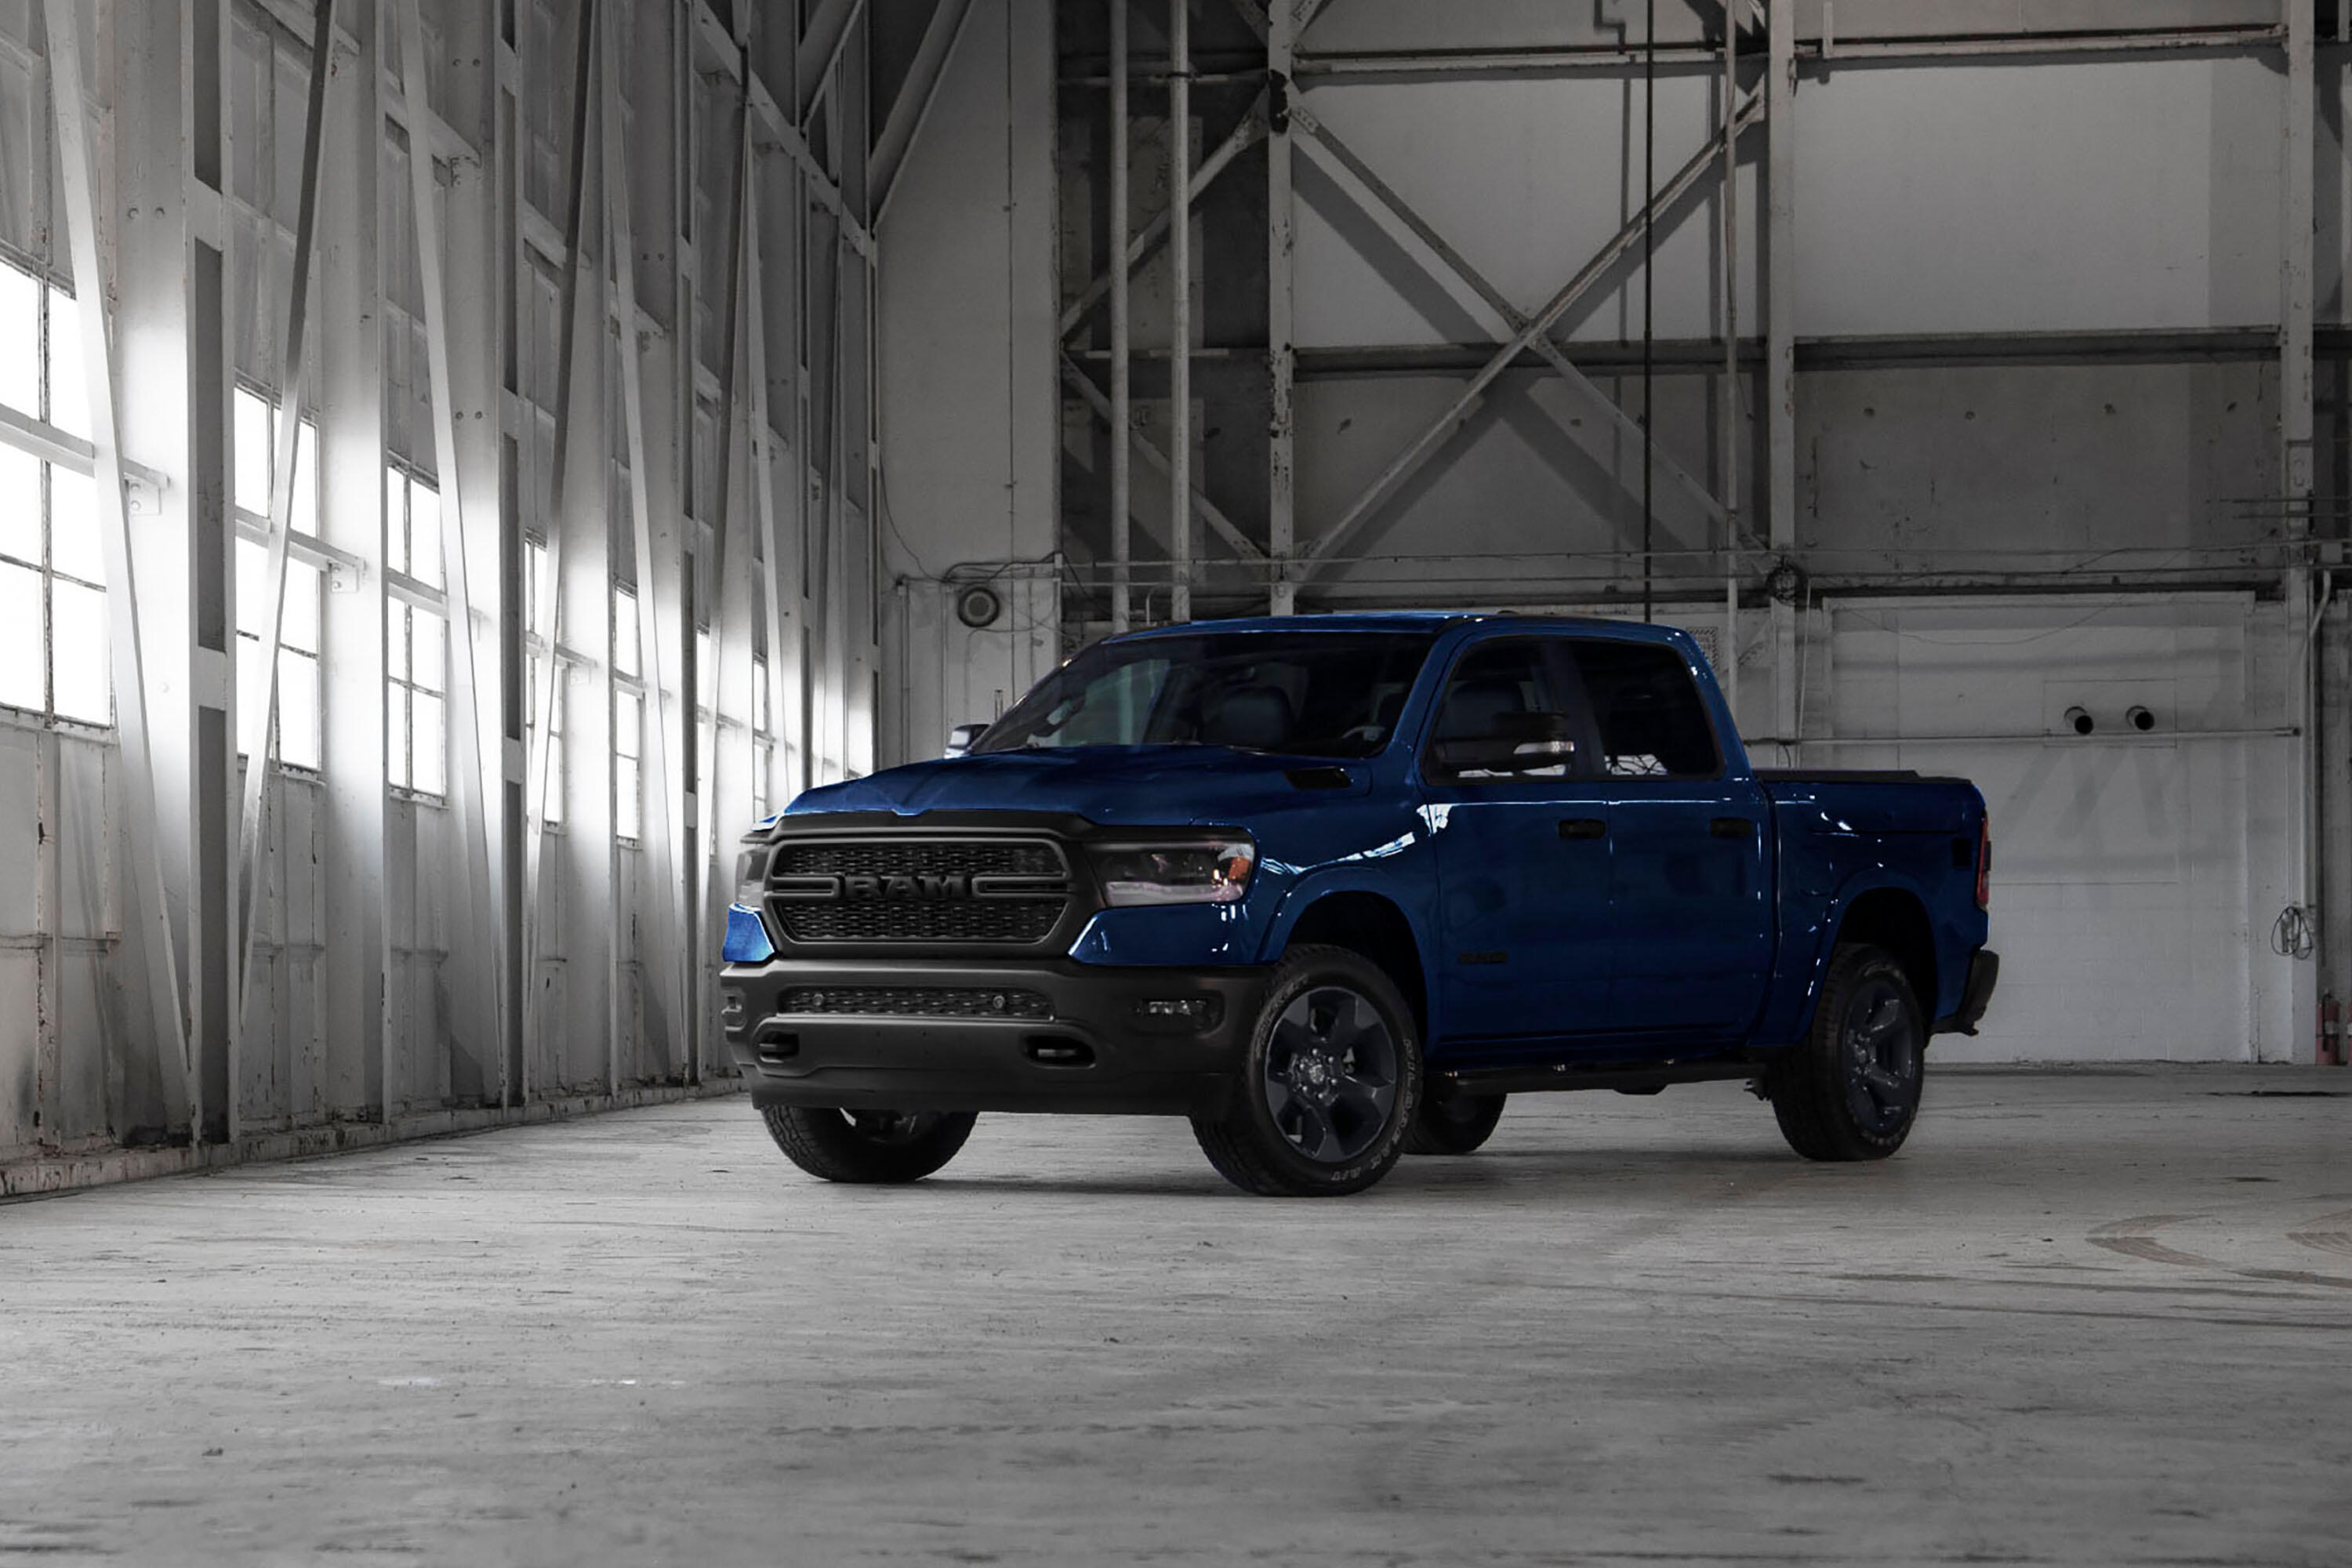 Ram 1500 Built to Serve Edition, US Navy